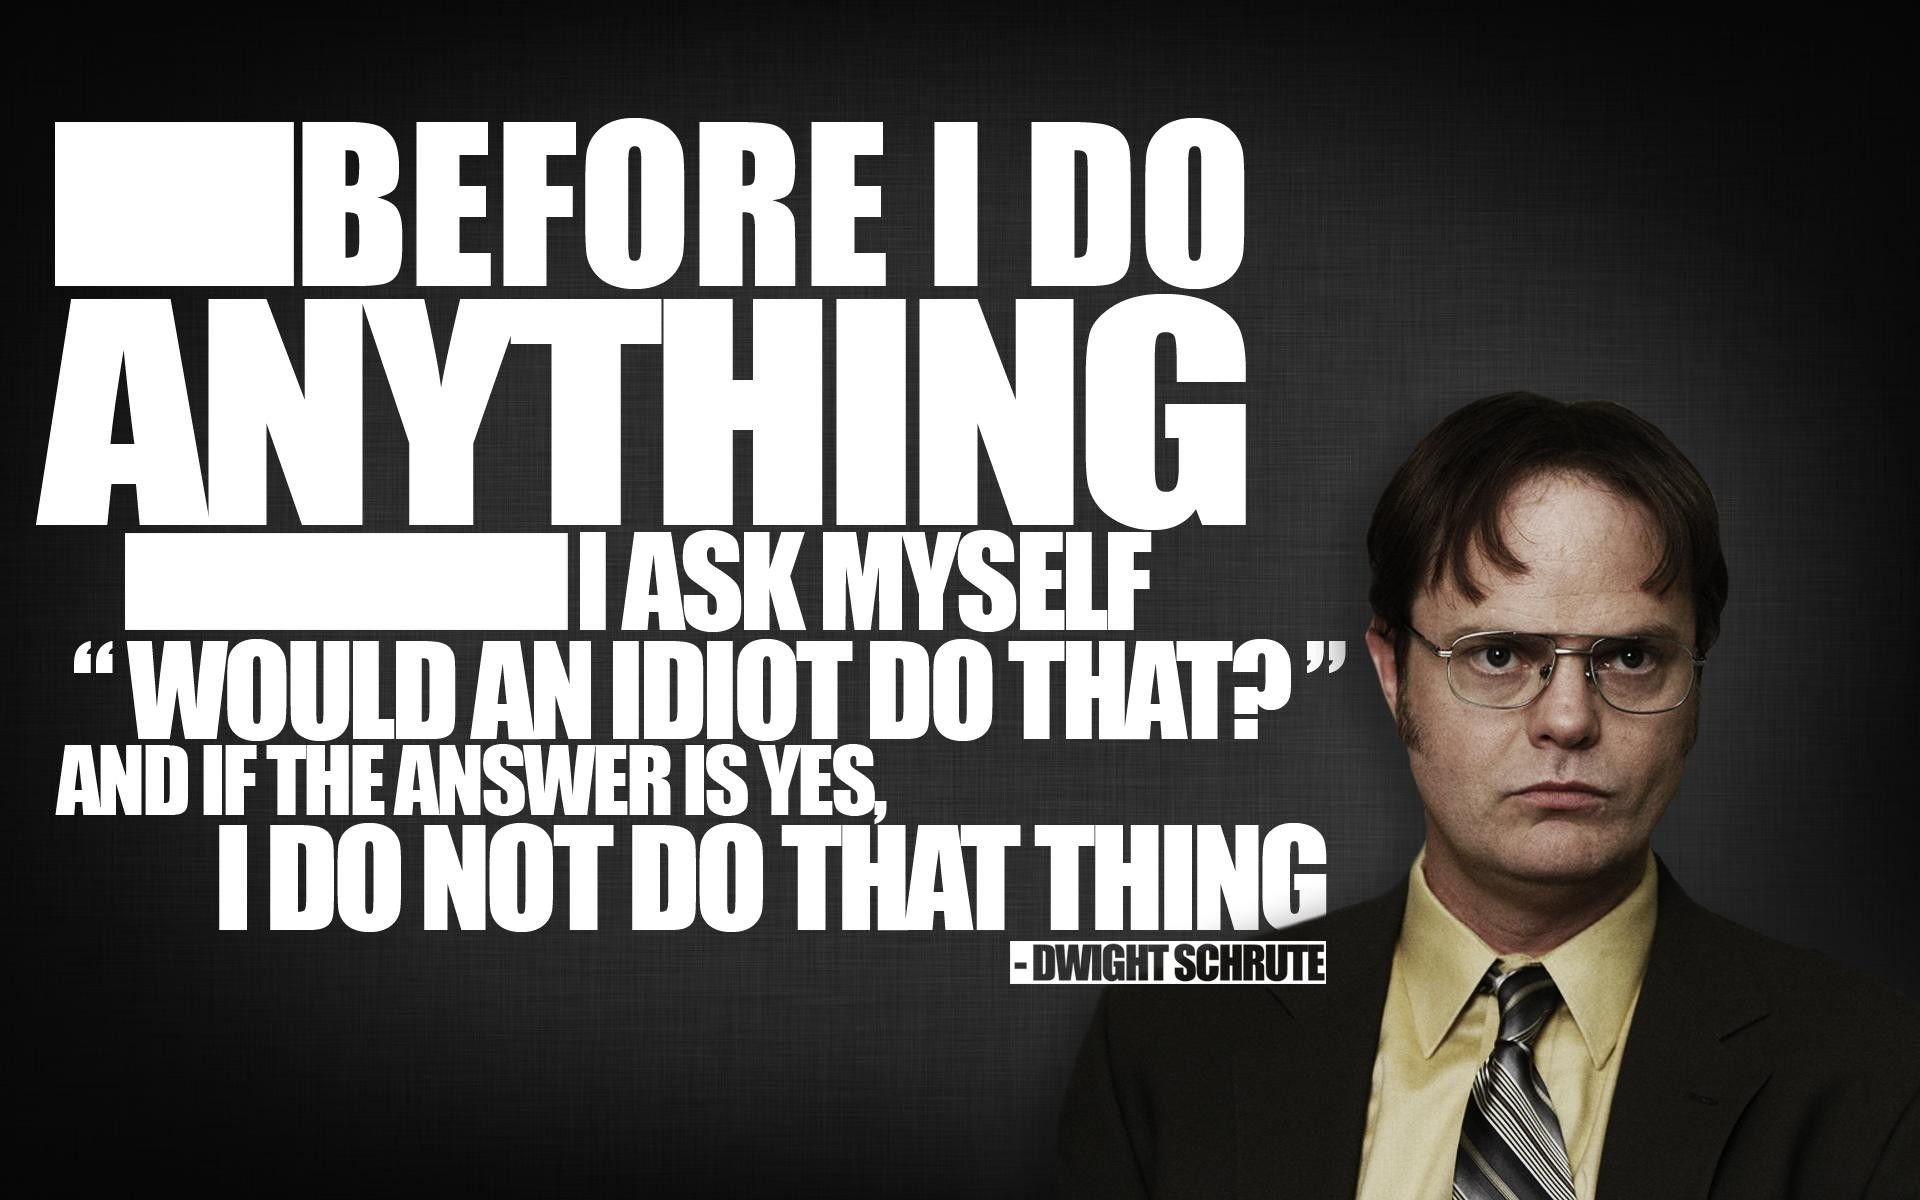 Pin by tawnya illes on giggles pinterest dwight schrute